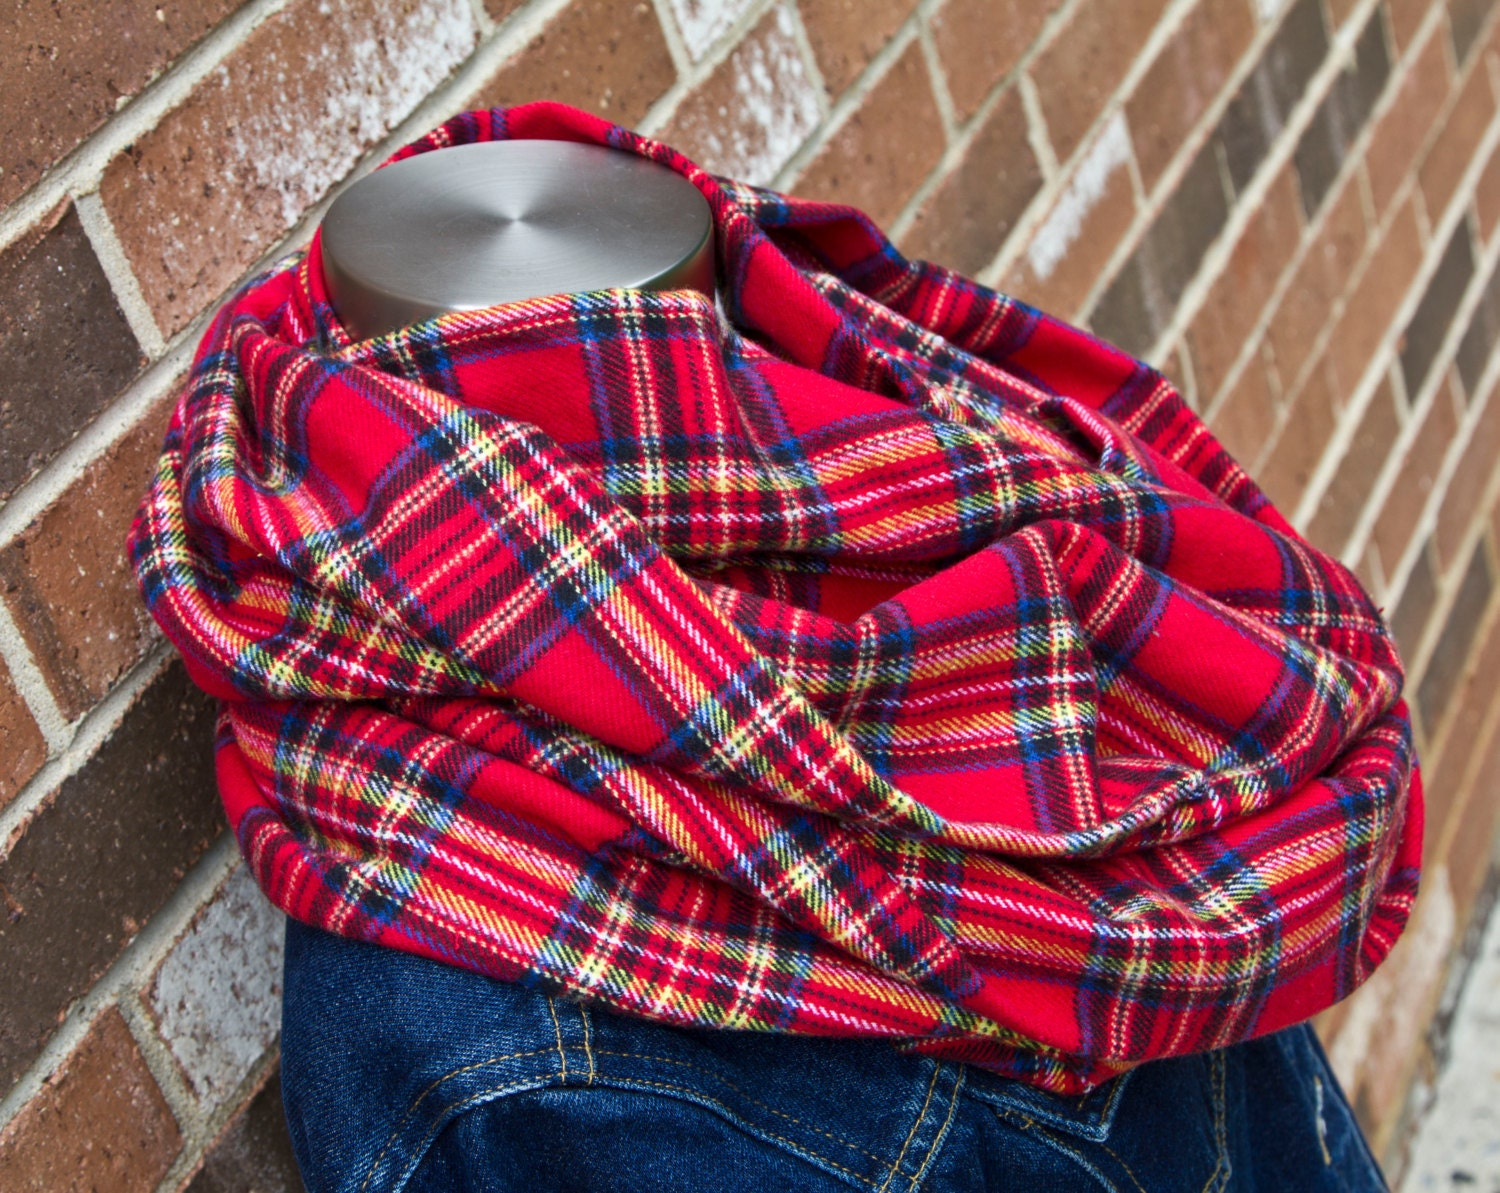 Scarfand's Plaid & Tartan Winter Infinity Scarf Wraps Shop Best Sellers · Deals of the Day · Fast Shipping · Read Ratings & Reviews.